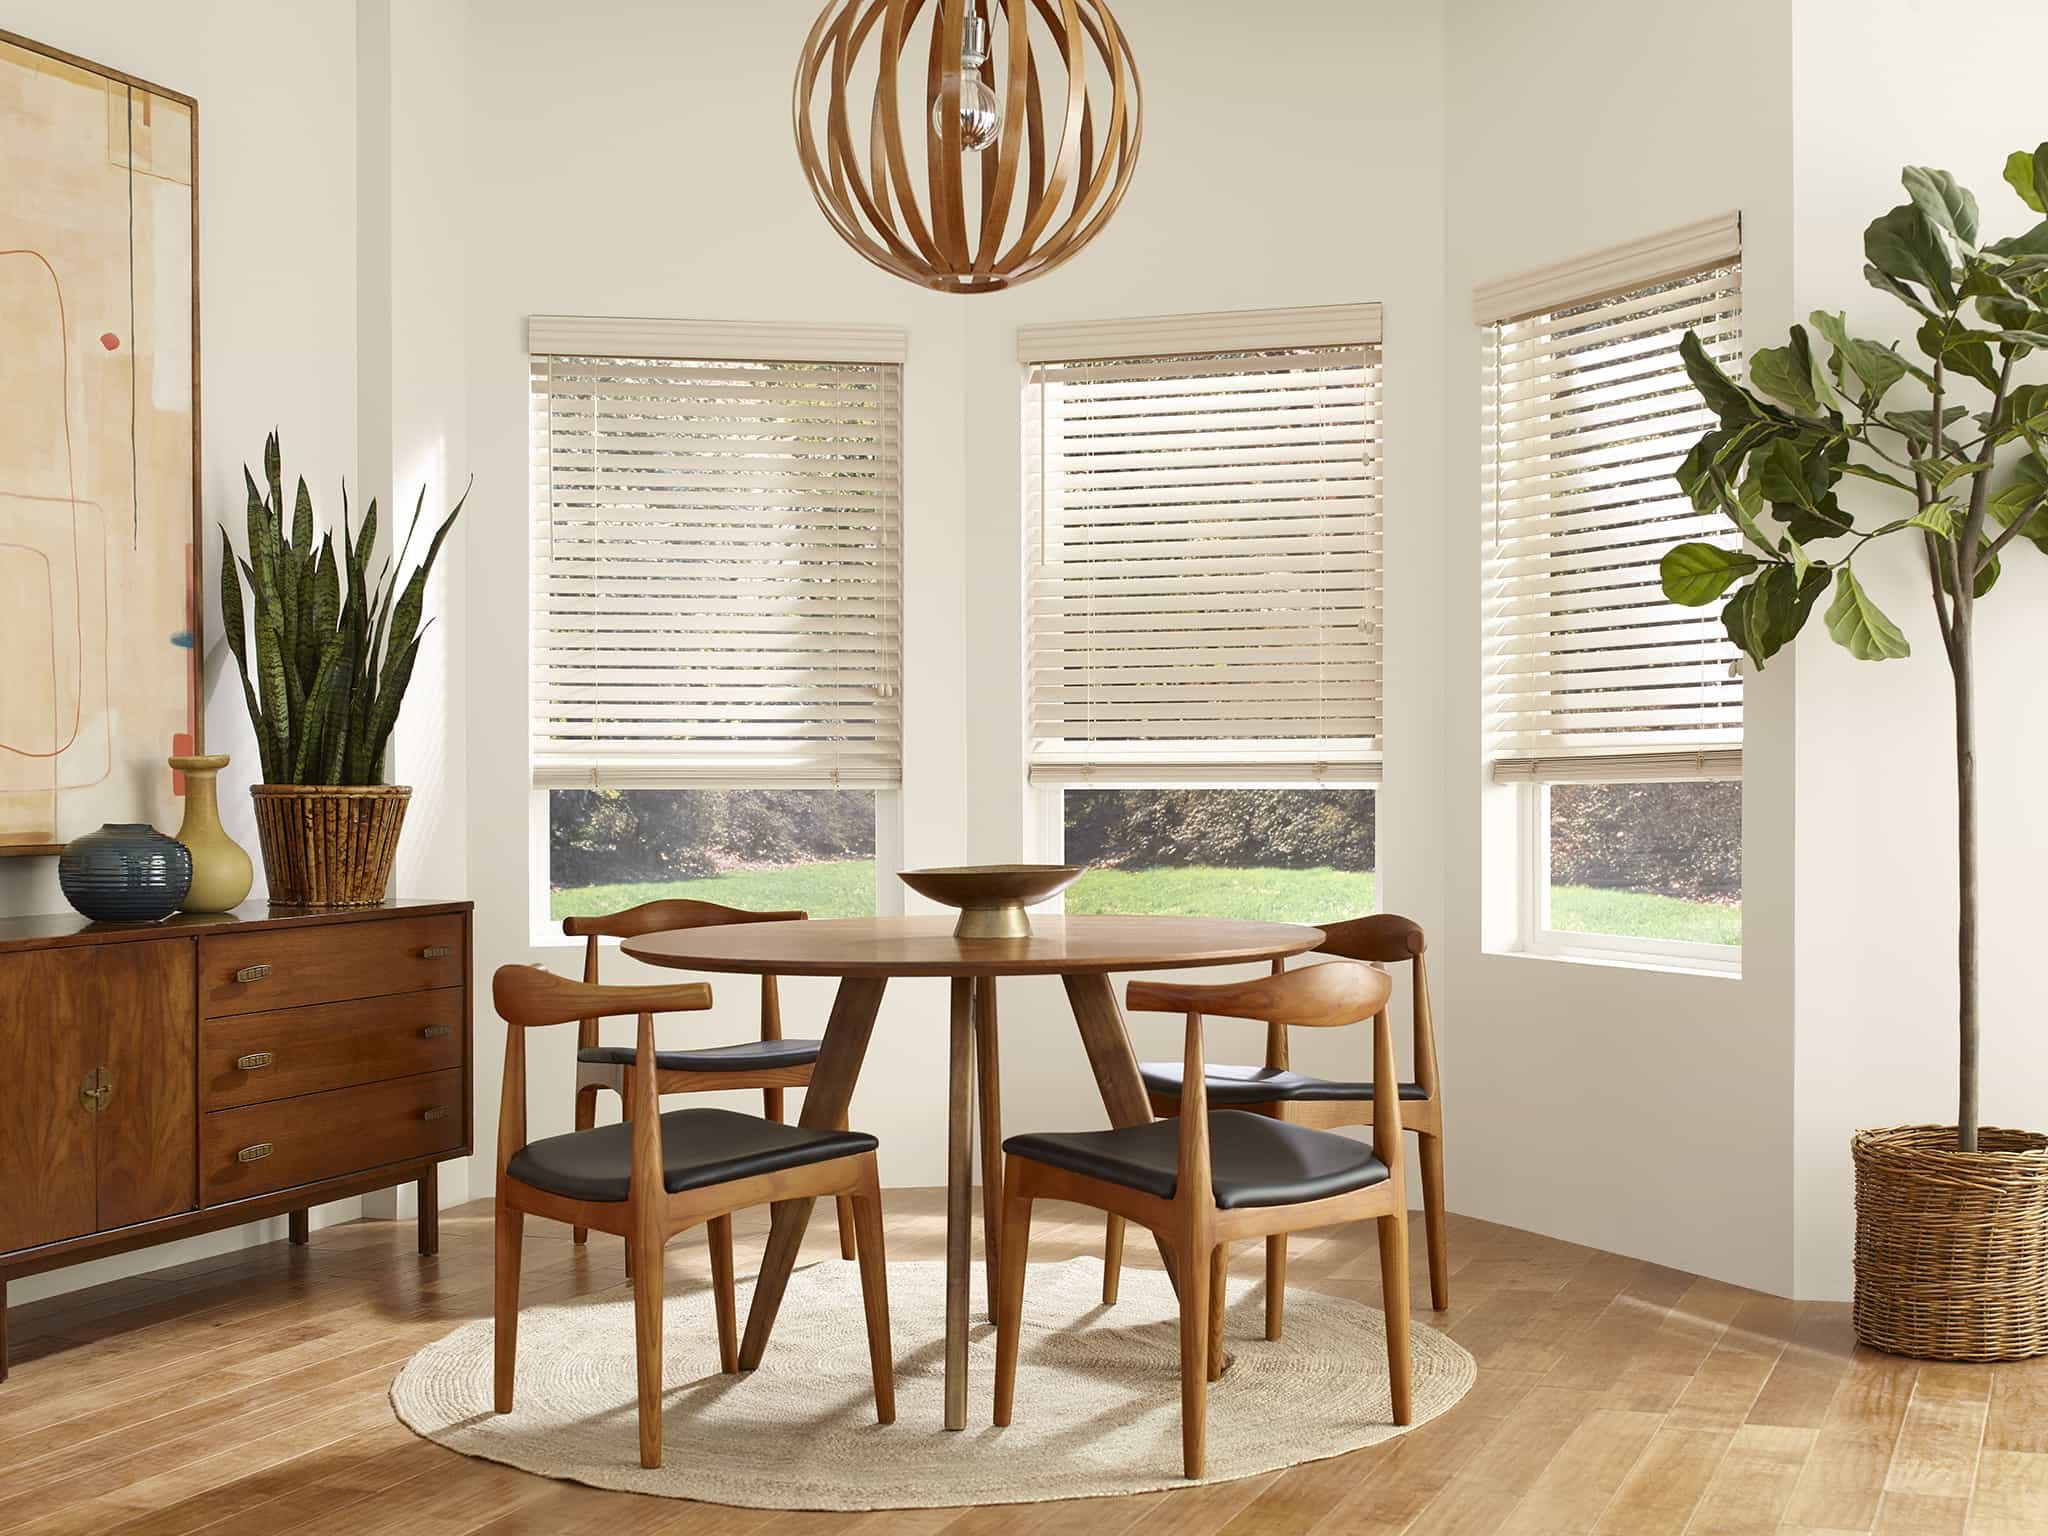 2020 Home Decor Trend Guide The Blinds Com Blog